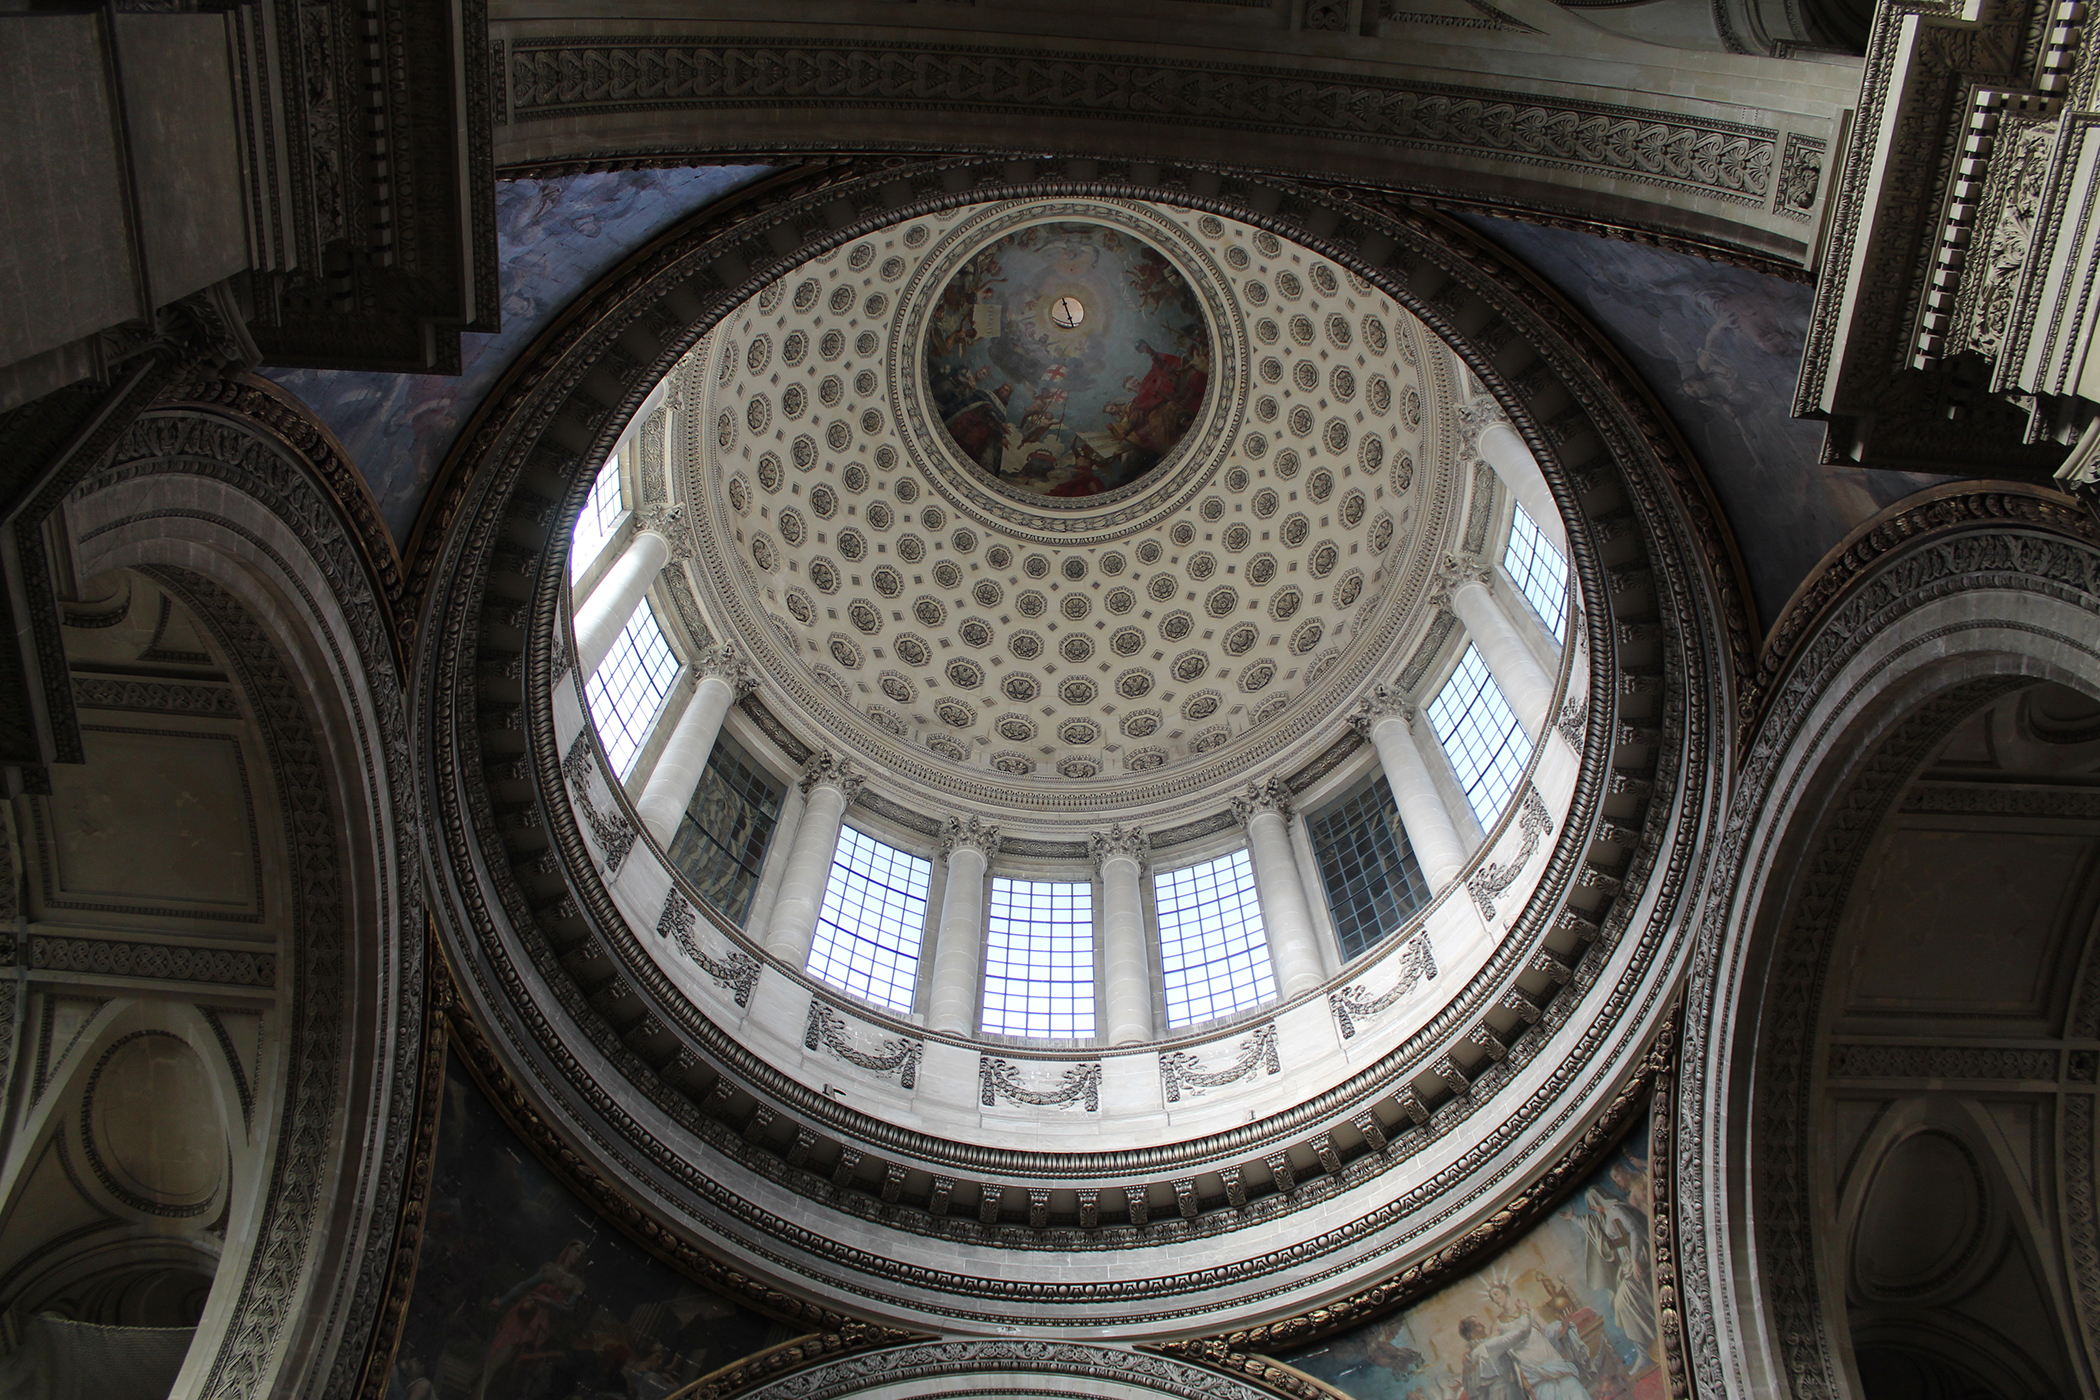 A picture of the oculus of the Panthéon.